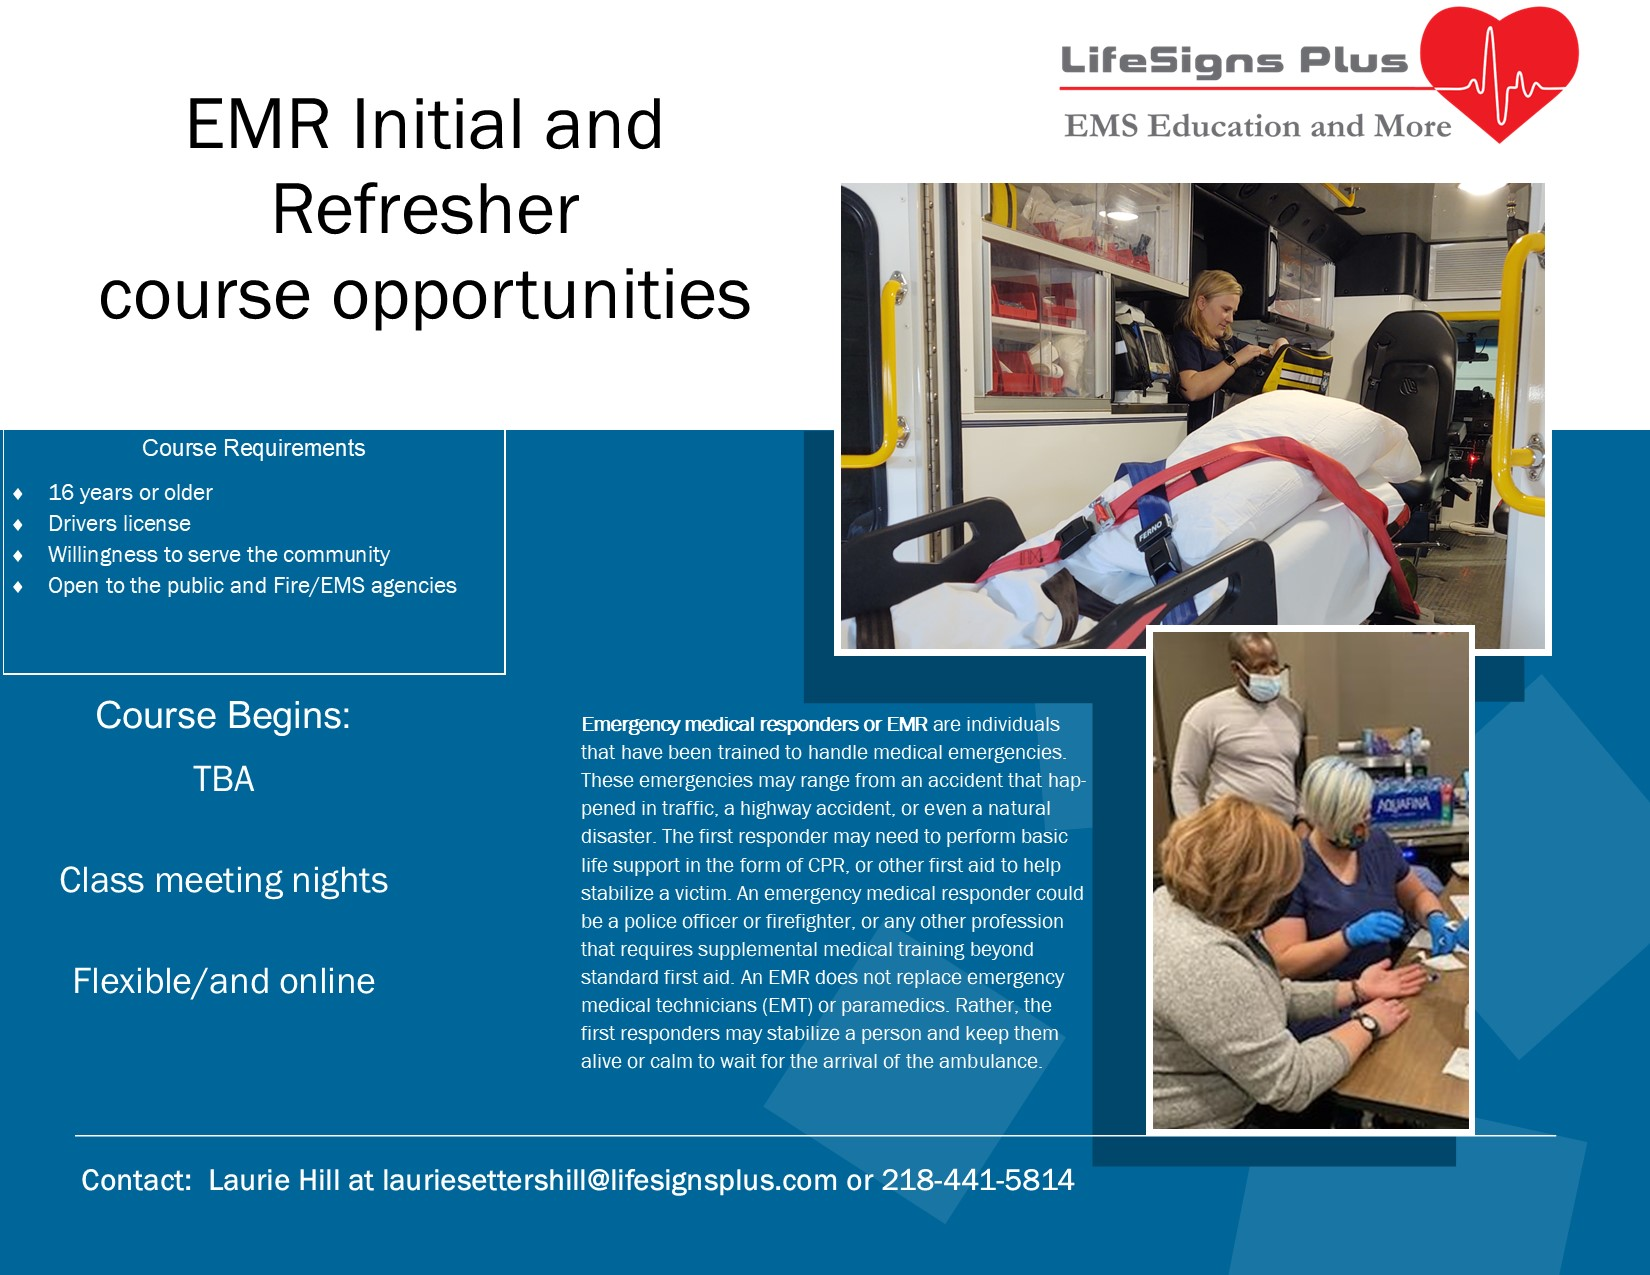 EMR inital and refresher fall 2021